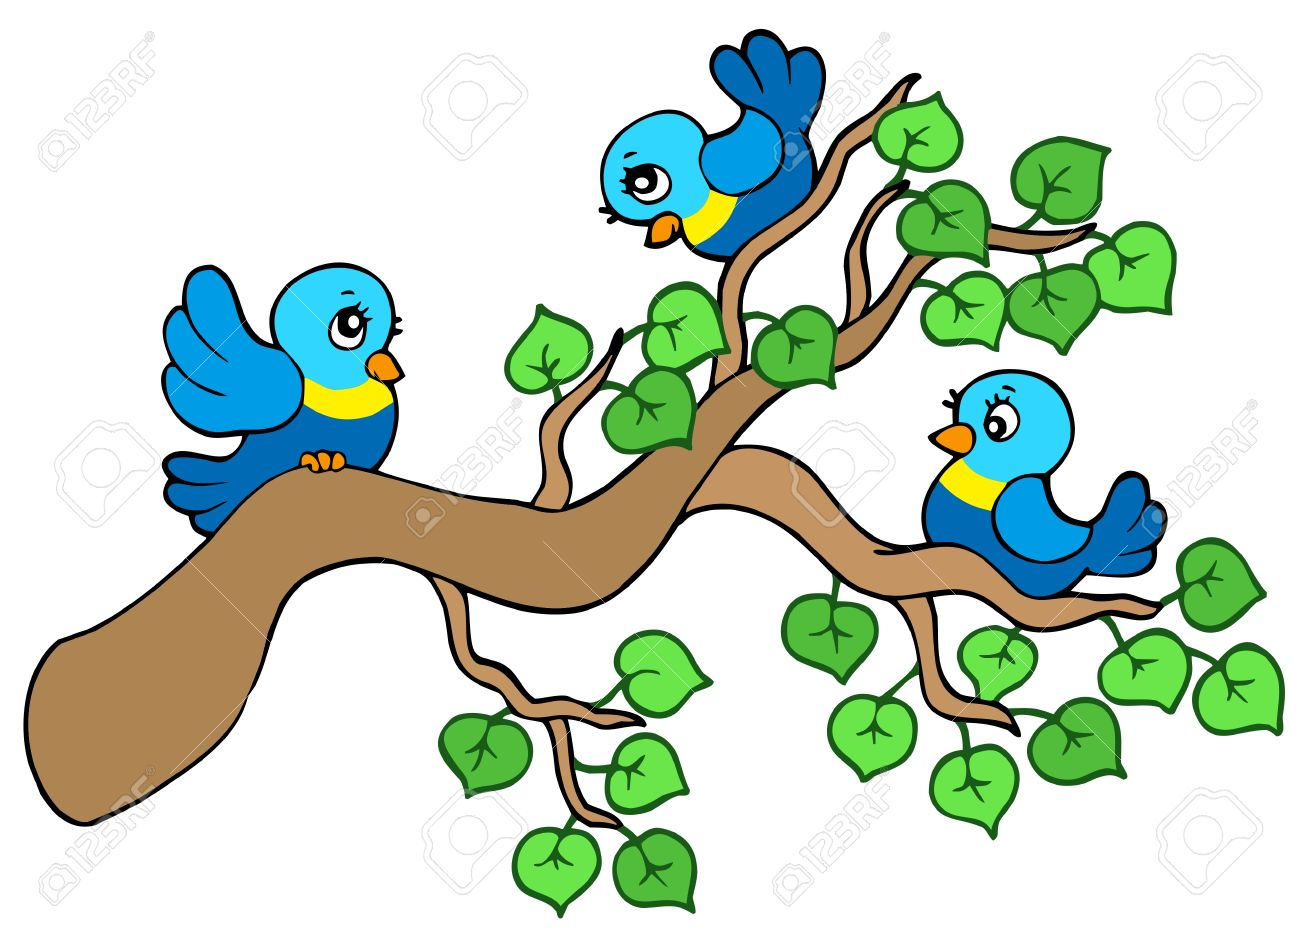 Birds On Branches Clipart.